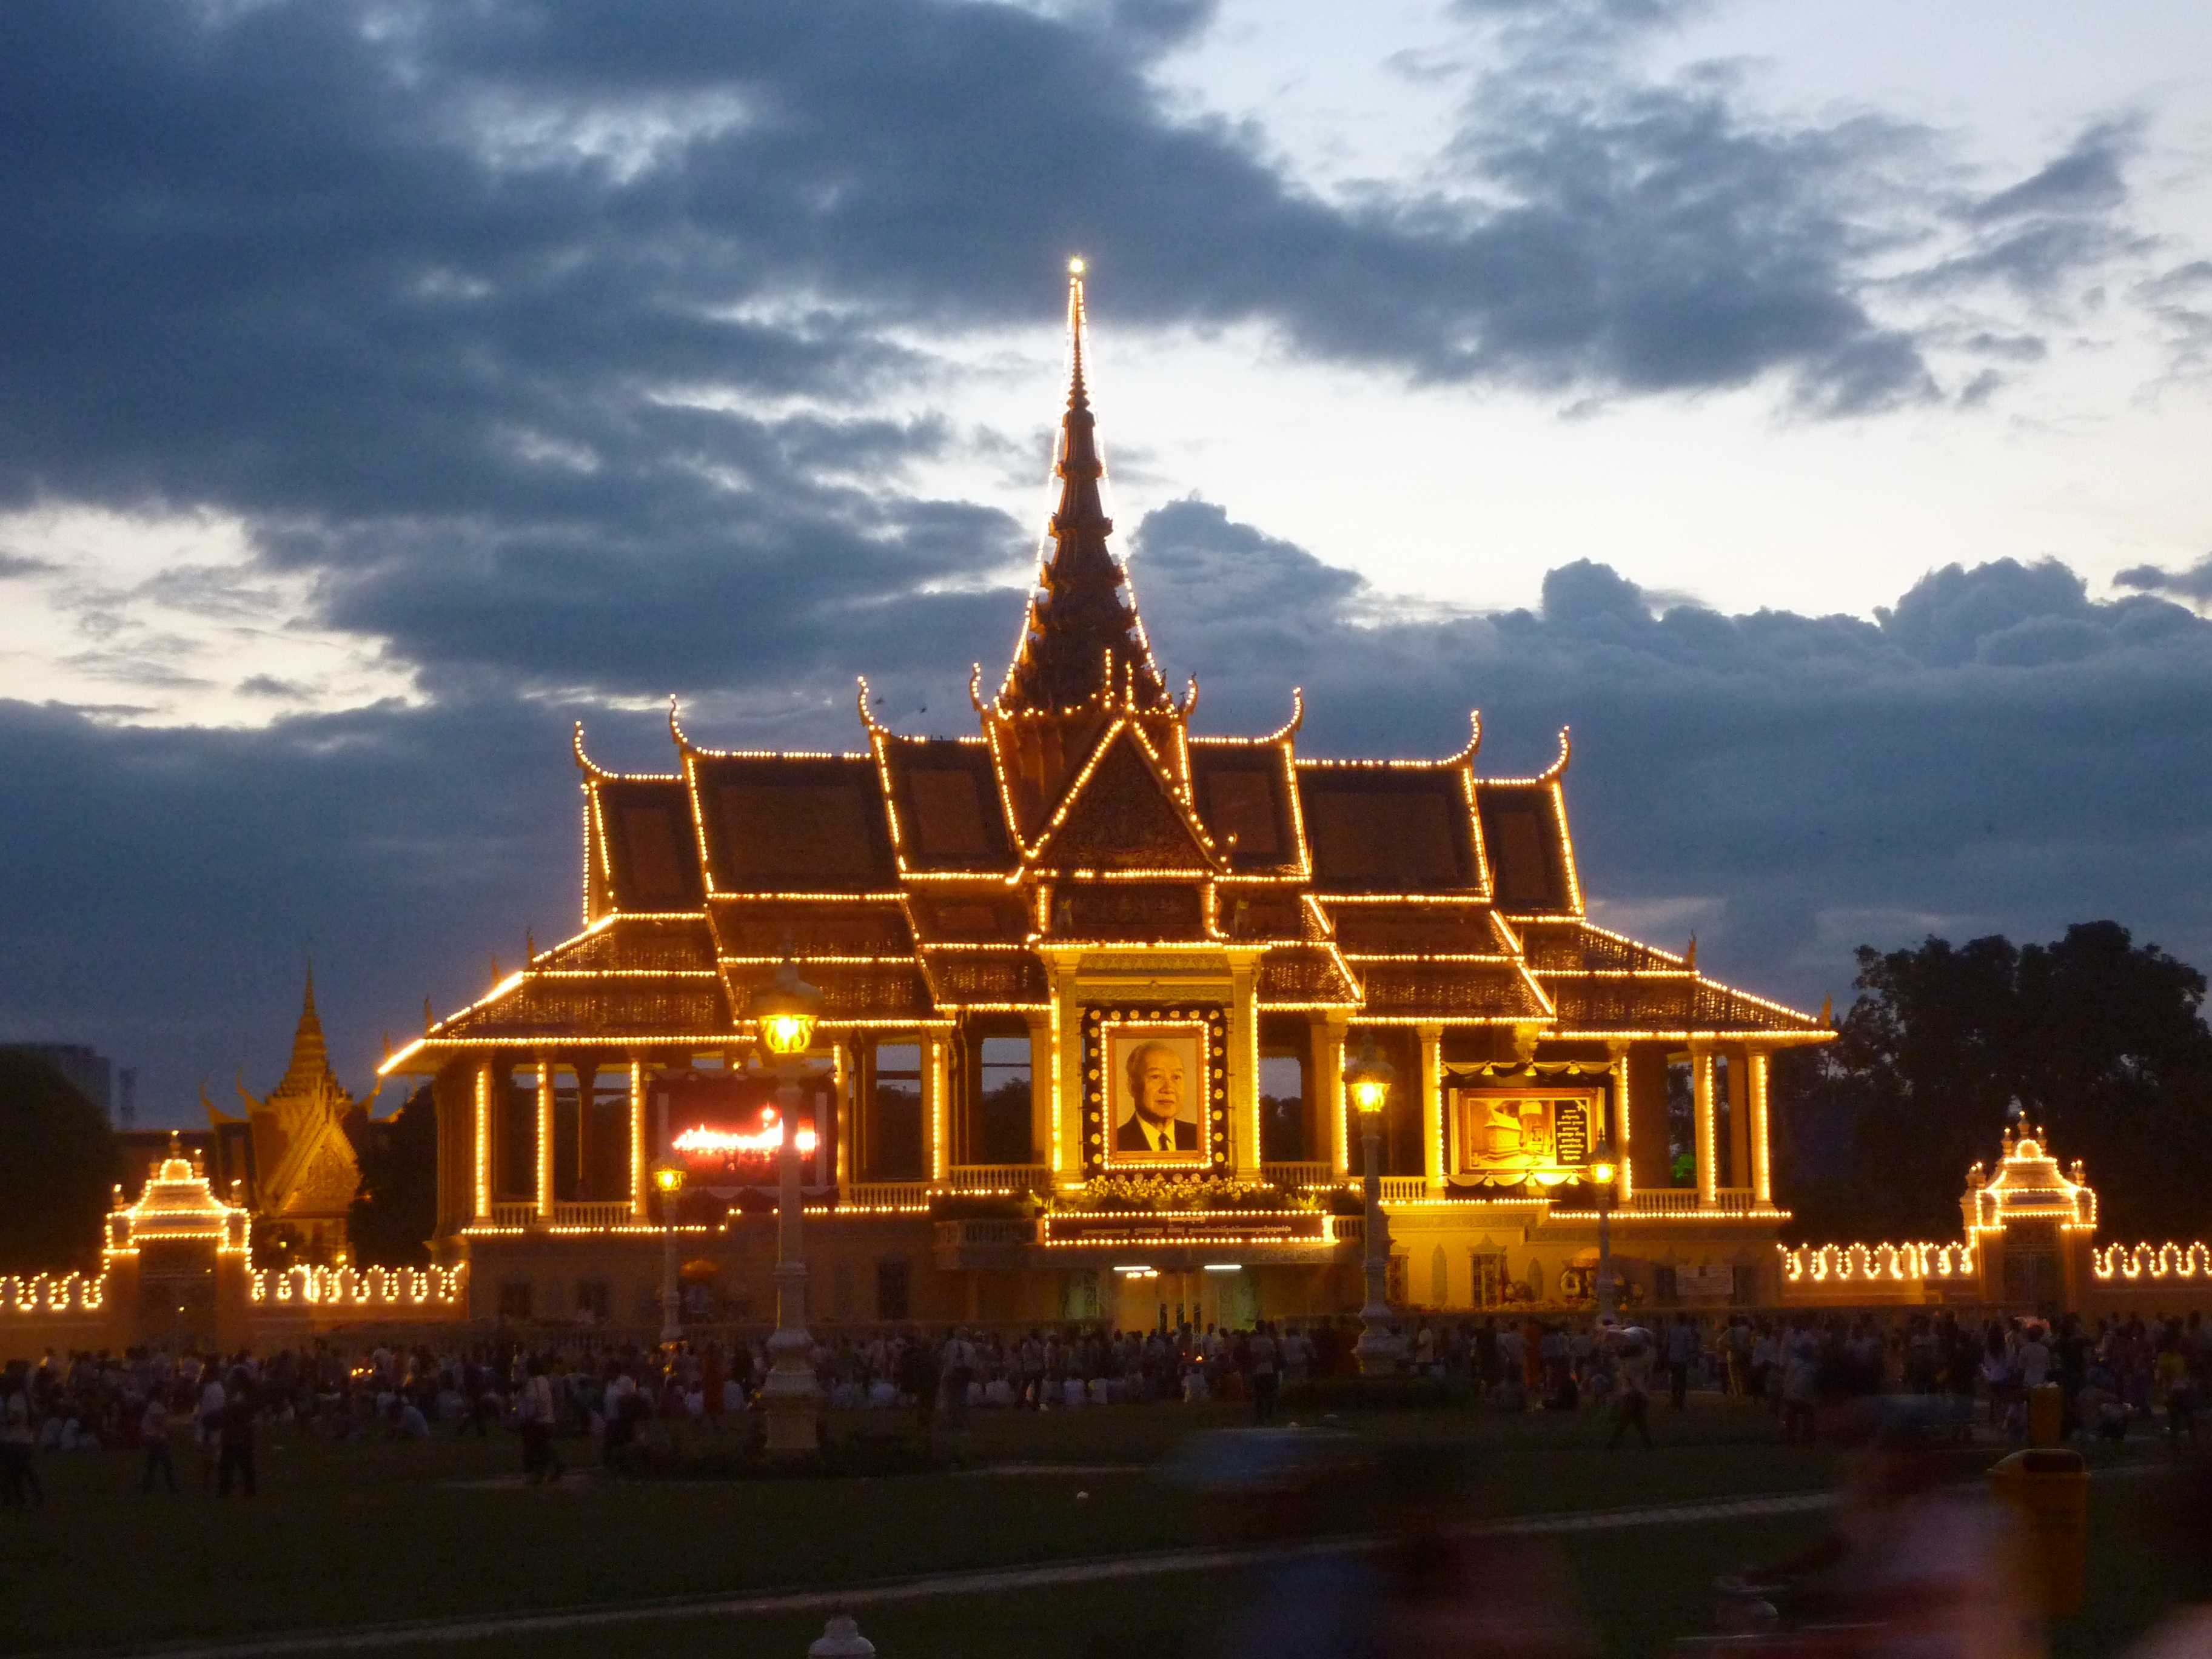 The Royal Palace lit up to commemorate the recent passing of the King.